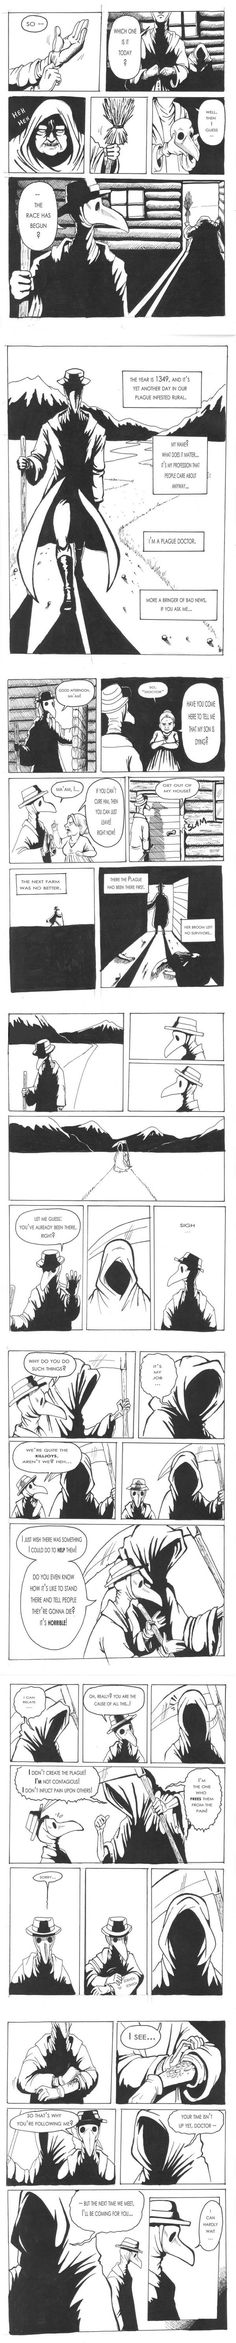 The Plague Doctor. (Credit goes to oomizuao)- The Plague Doctor. (Credit goes to oomizuao) Archie Comics, Sad Comics, Comics Story, Short Comics, Cute Comics, Funny Comics, Cute Stories, Short Stories, Fandoms